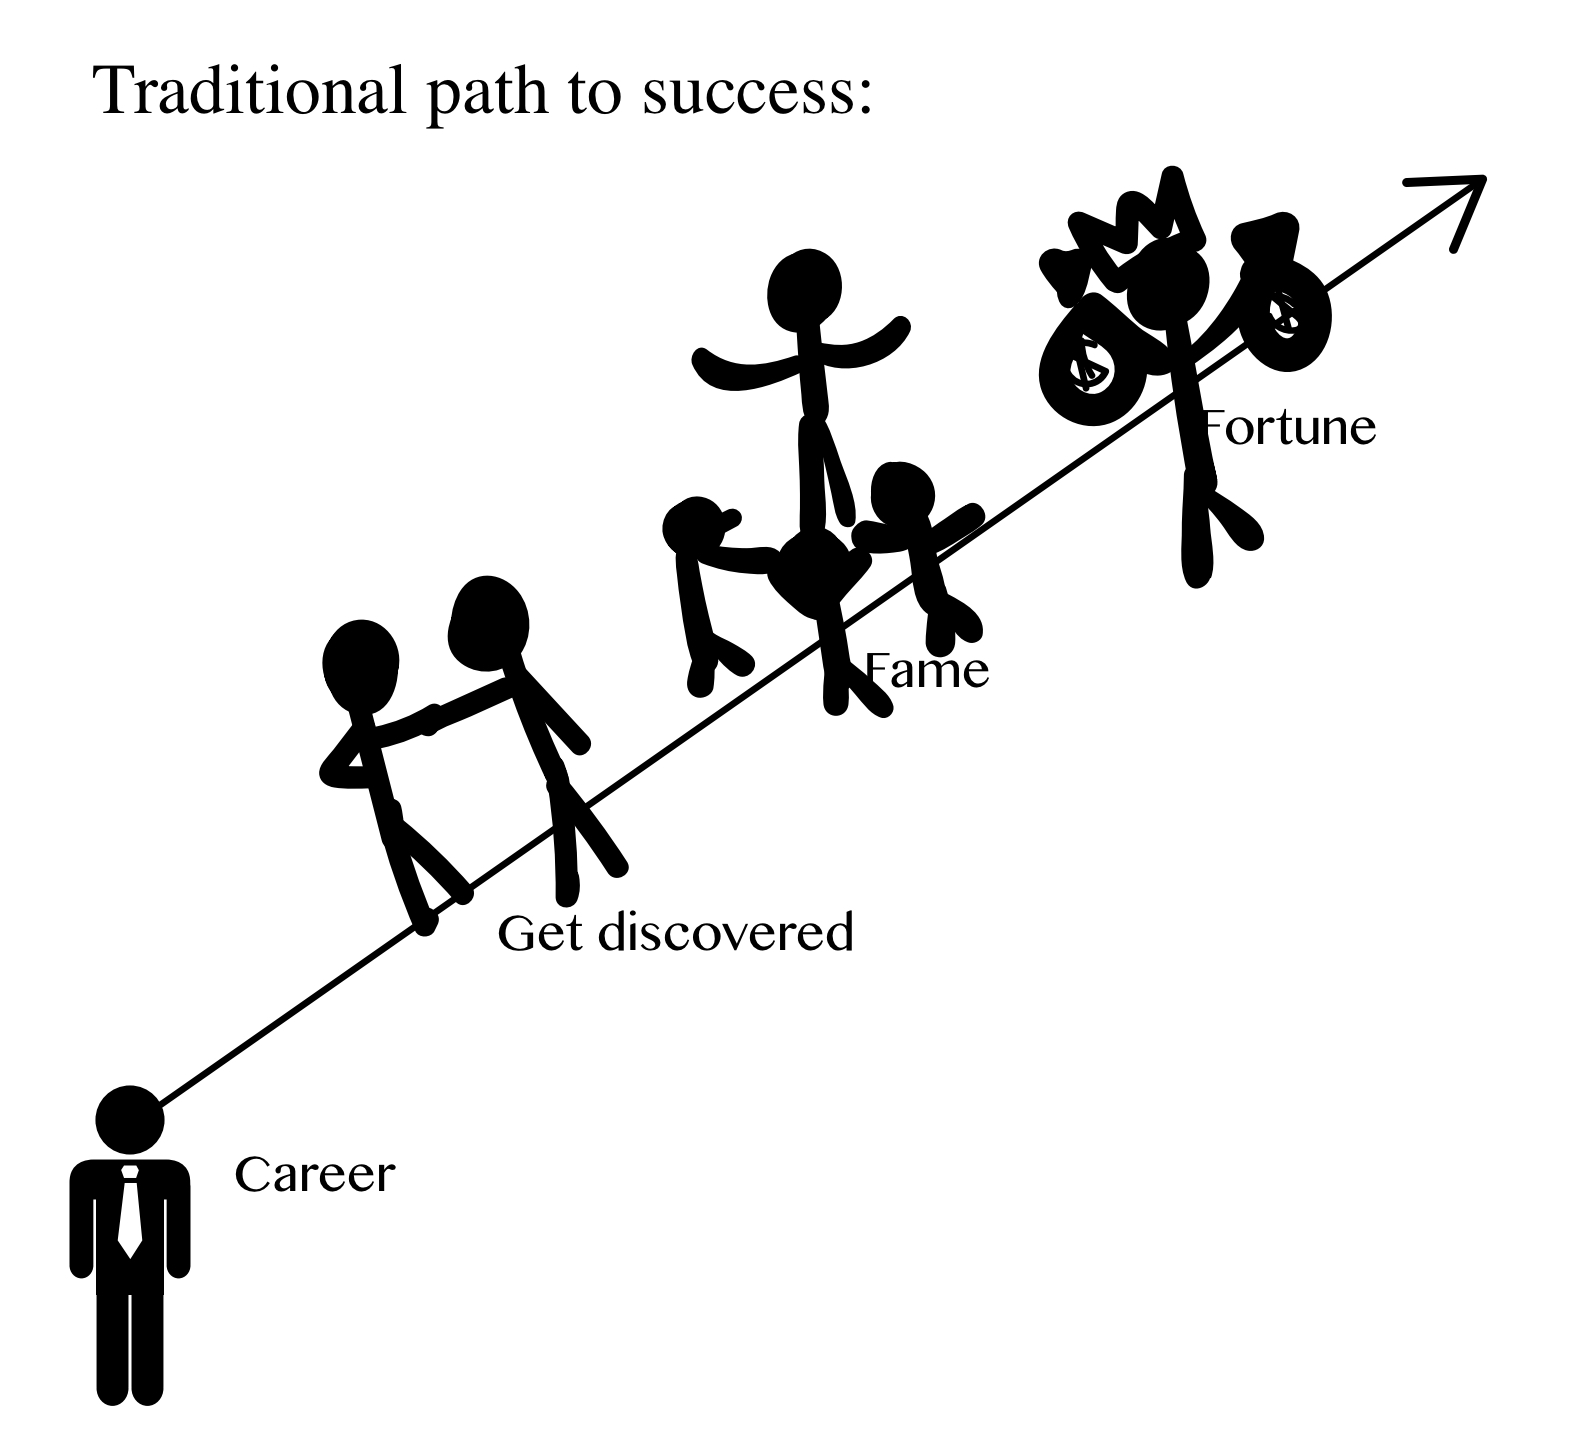 The traditional path to success.